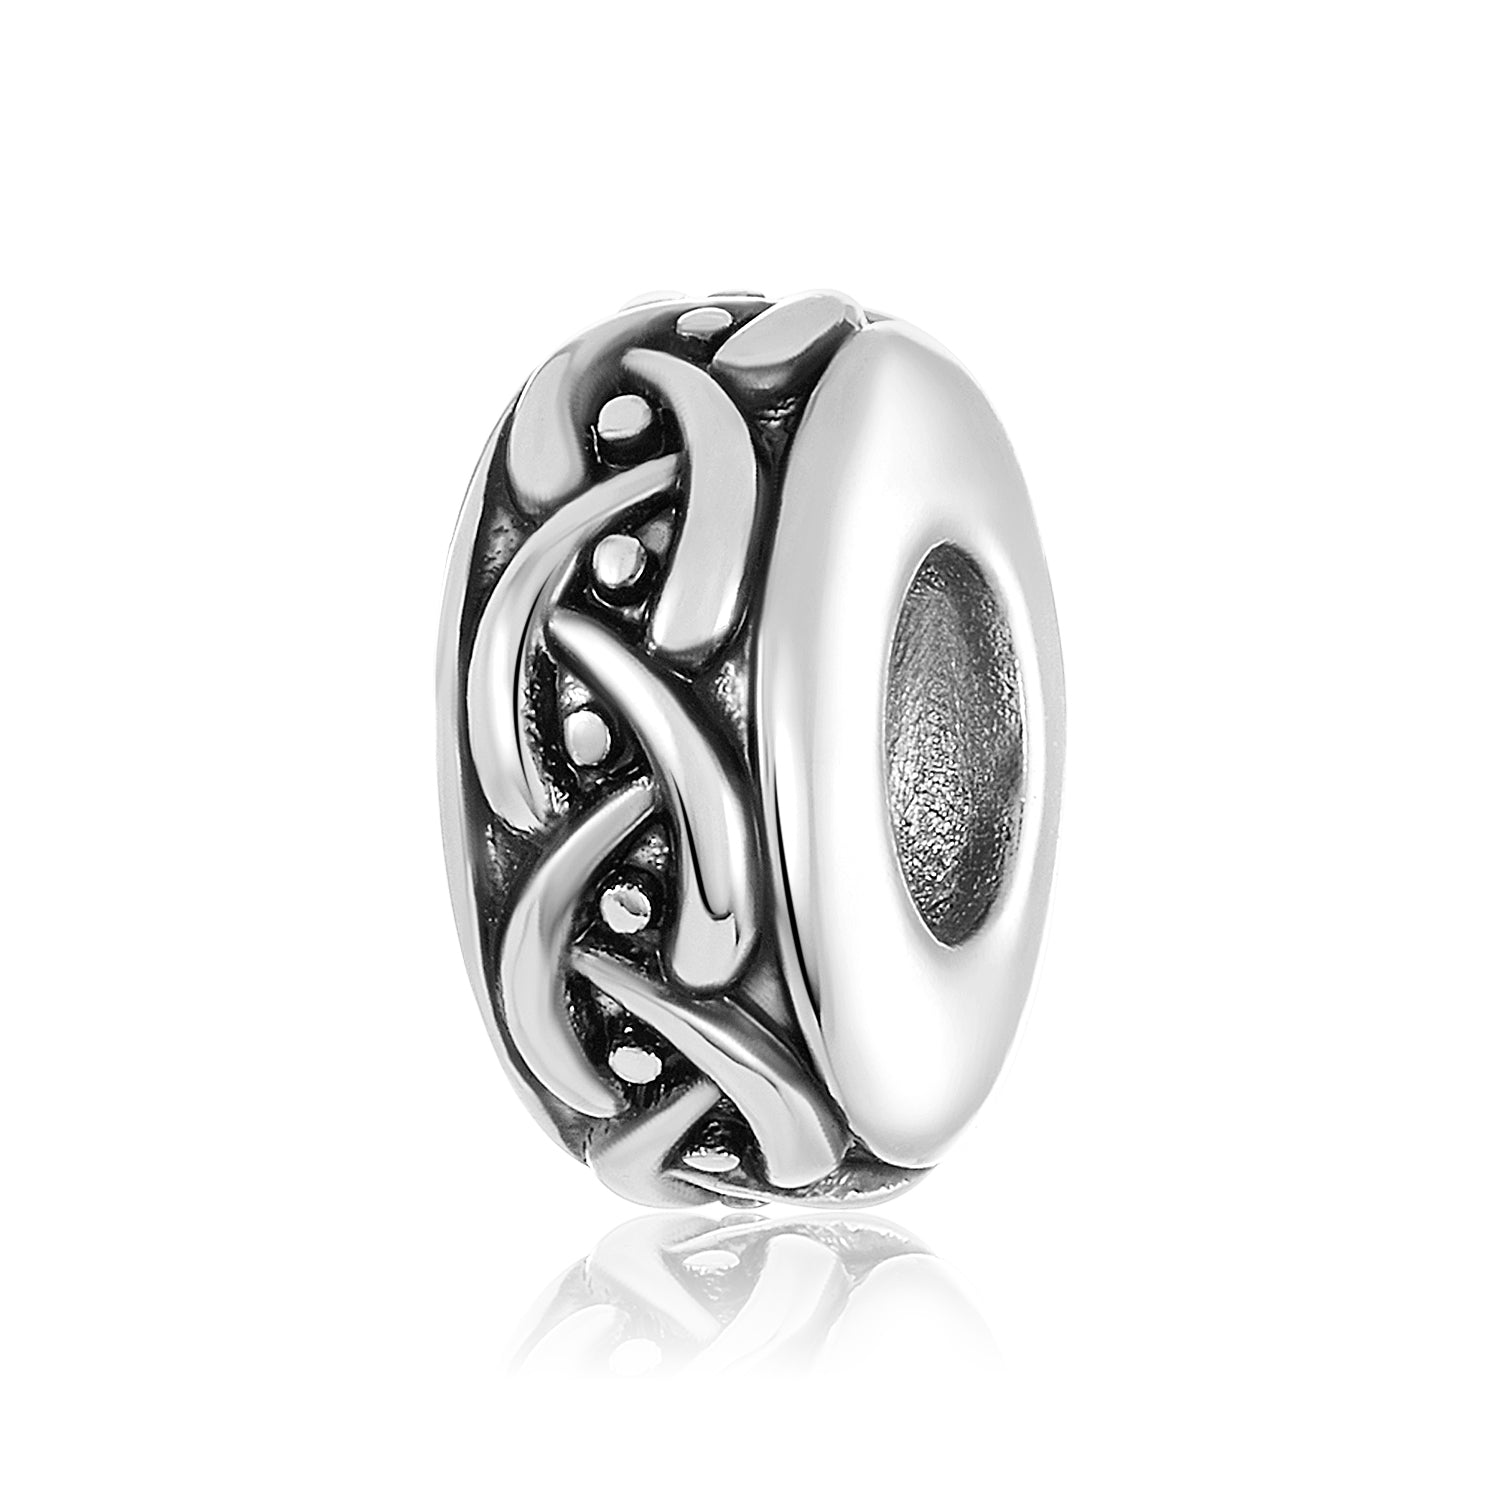 Silver charm/bead spacer with weaved design to be used on DBW interchangeable bangle bracelets.  Silver spacers sold in pairs.